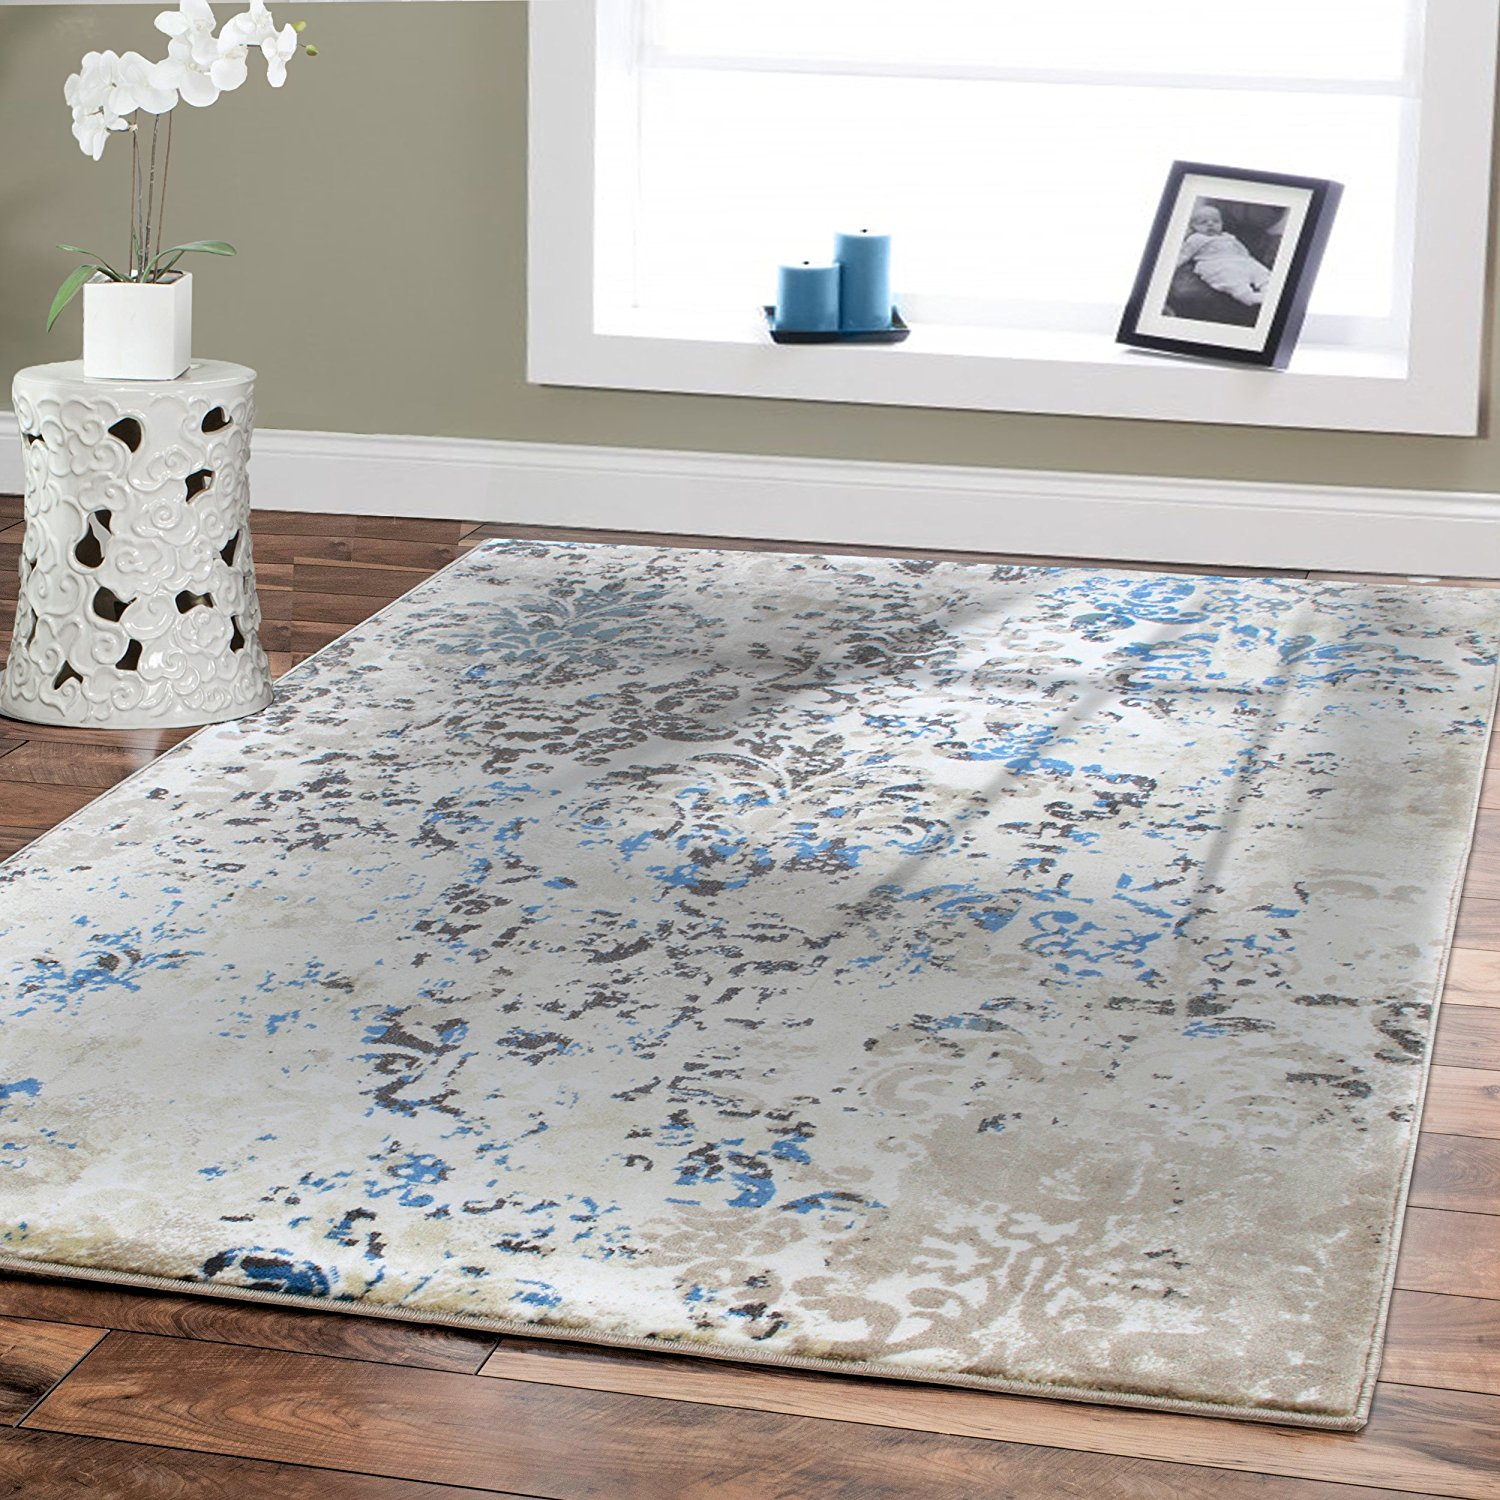 modern rugs online full size of living room:discount area rugs free shipping jcpenney rugs  online DADGJLX